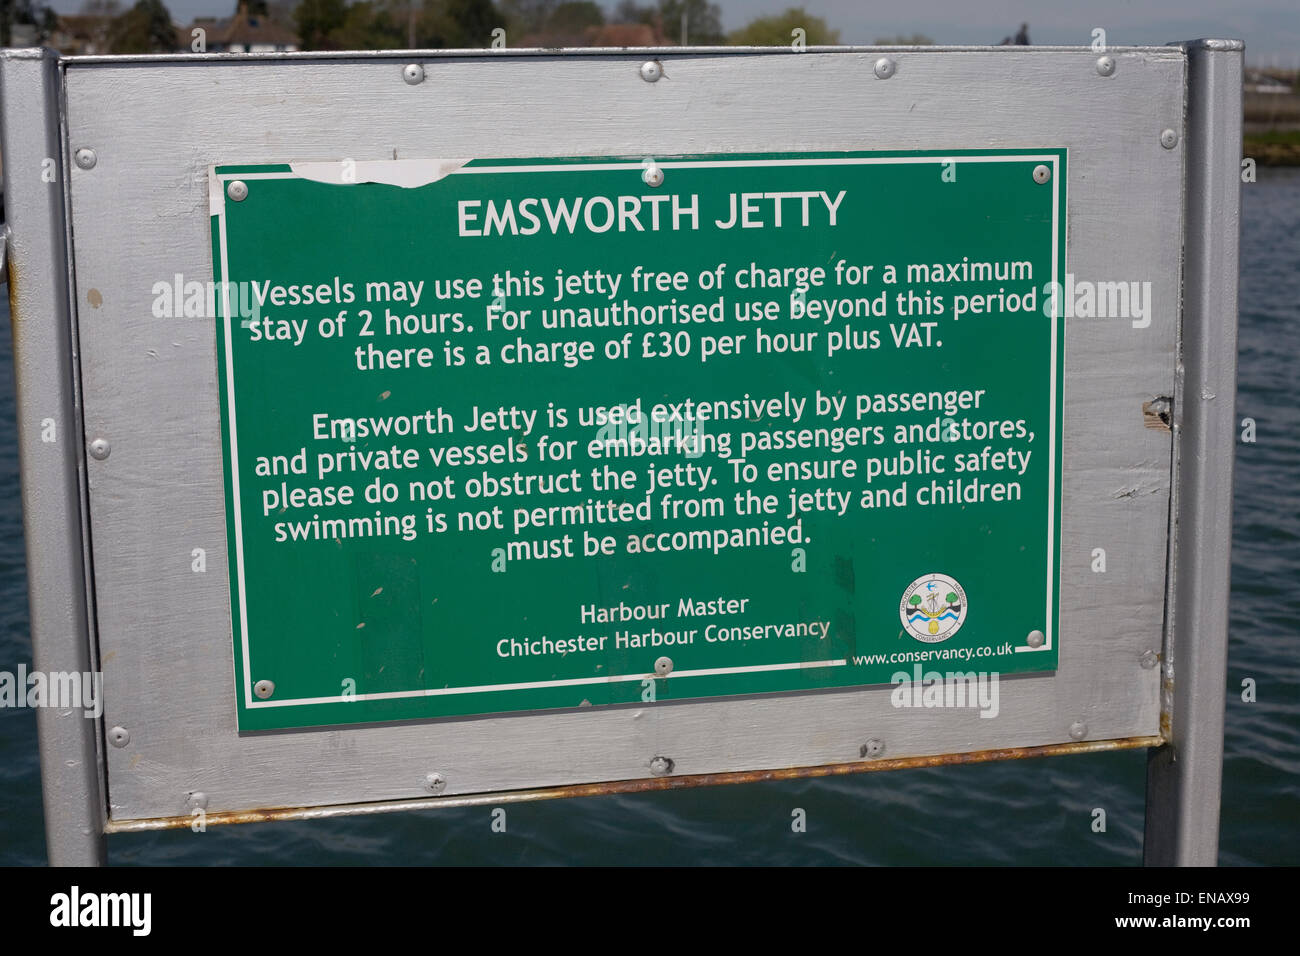 Notice from Harbour master of Chichester harbour conservancy on Emsworth jetty about embarkation and mooring - Stock Image